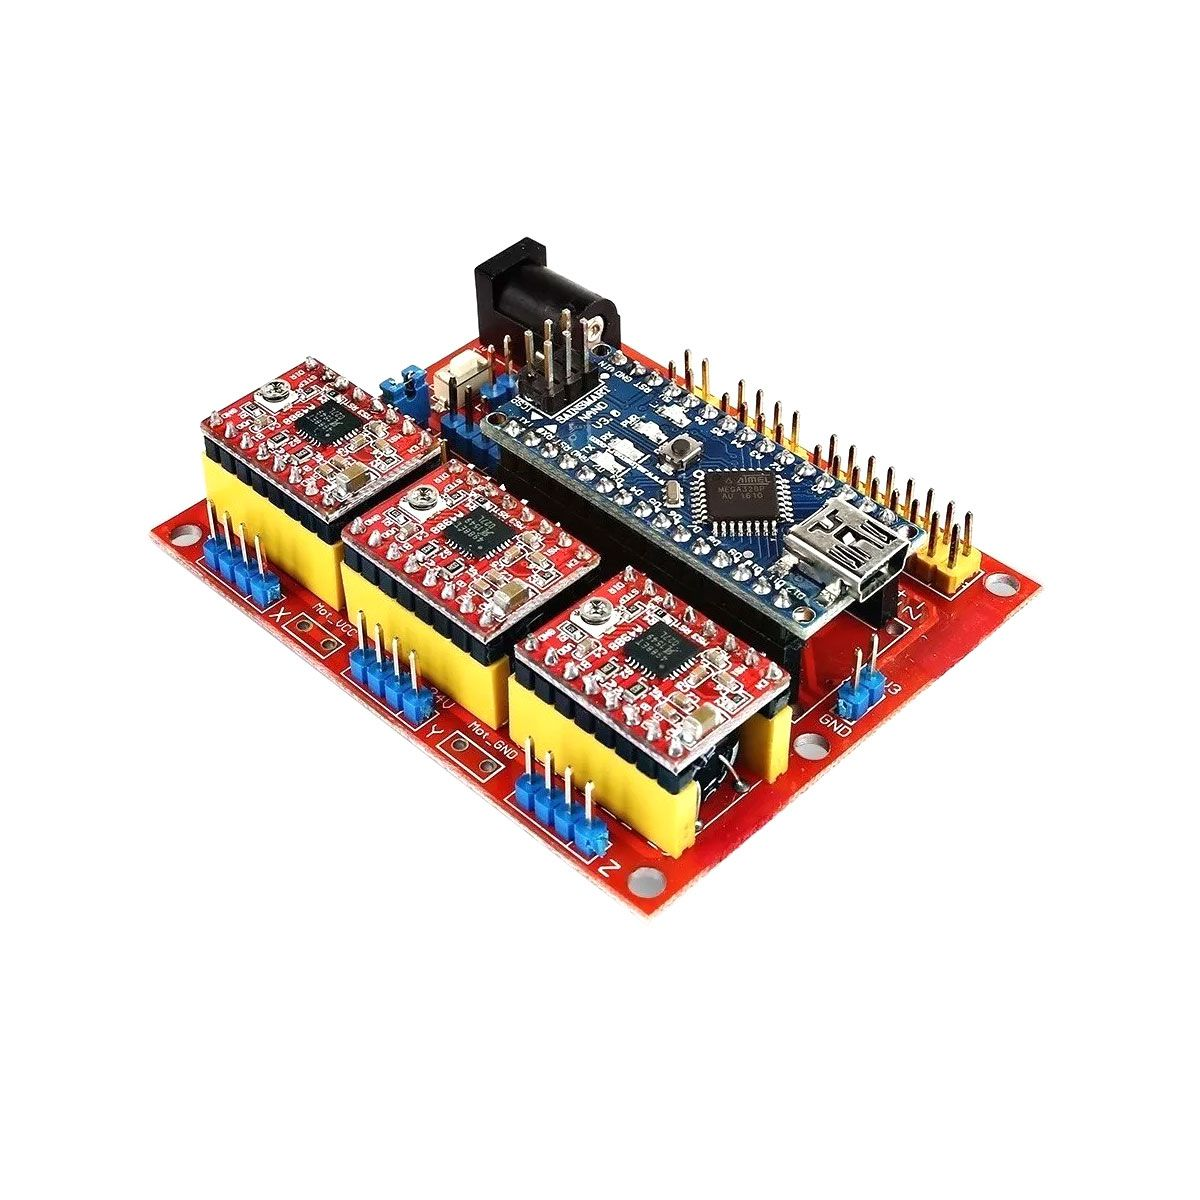 Kit CNC Shield V4 com Placa Nano + Drivers A4988 + Cabo Compatível com Arduino